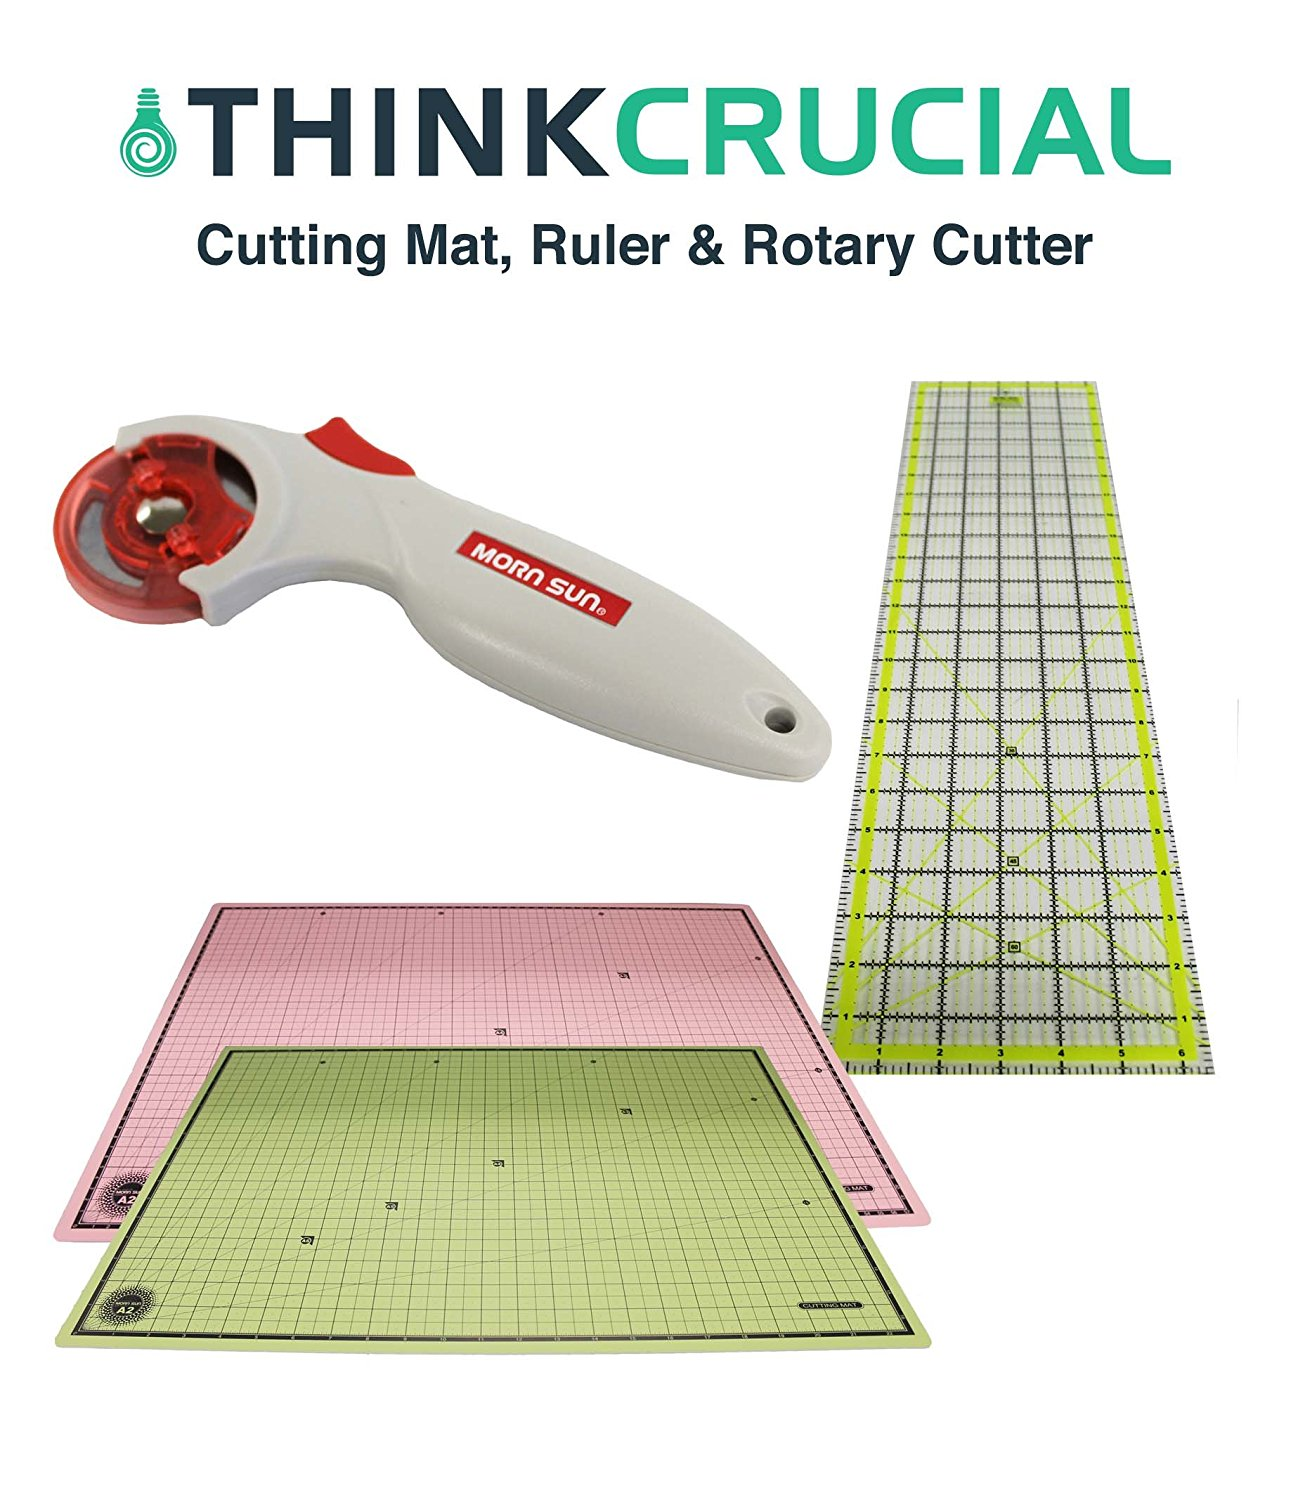 Think Crucial Durable 24x18 Self Healing Reversible Cutting Mat, 6x24 Inch Acrylic Cutting Ruler & 45mm Contour Rotary Cutter